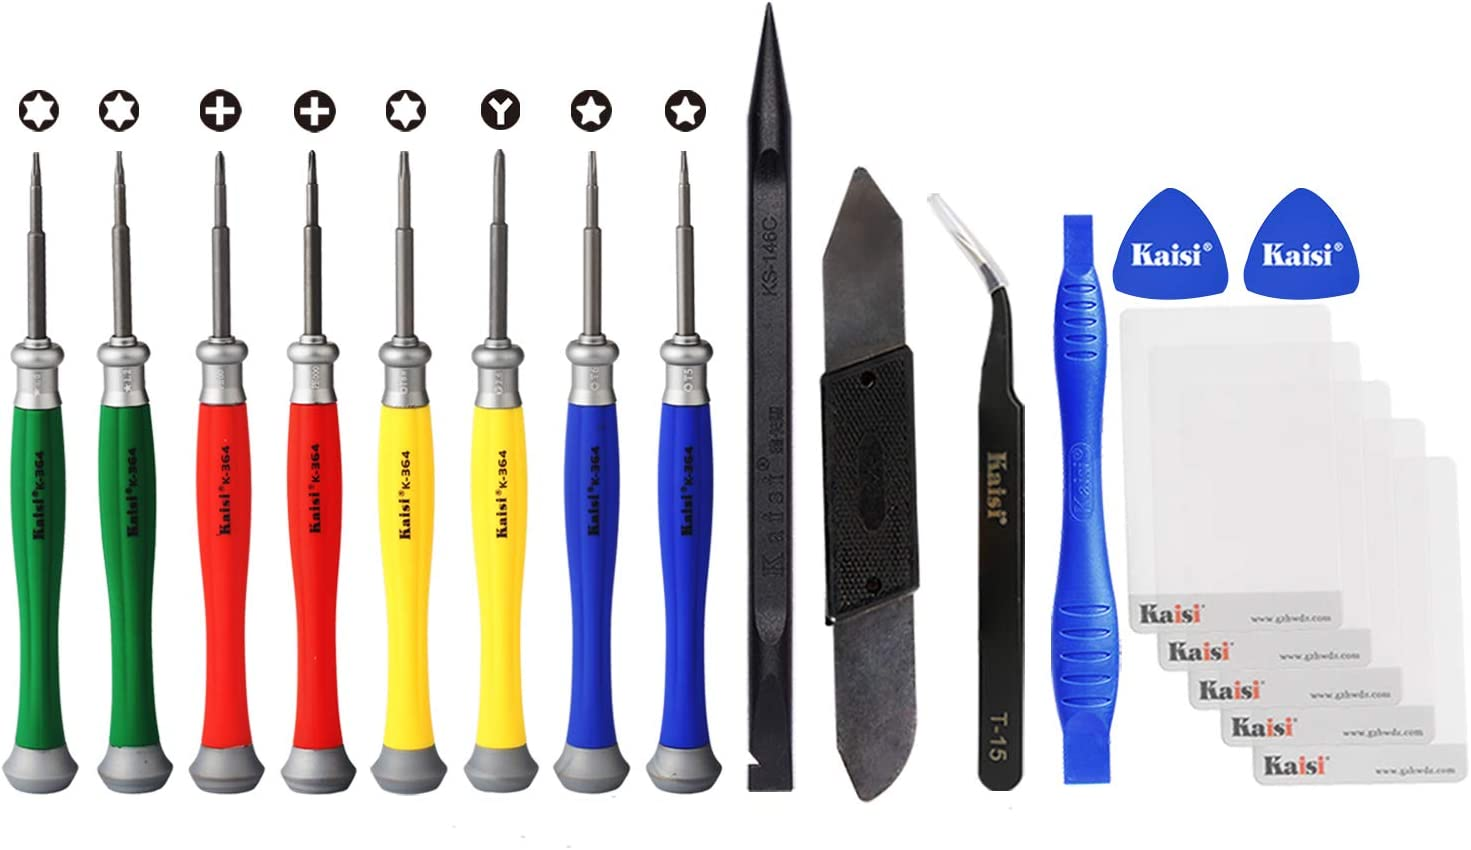 Kaisi 18 in 1 Professional MacBook Repair Tool Kit Precision MacBook Screwdriver Set, Pentalobe Screwdriver, Tri Wing, Torx and Phillips Screwdriver for MacBook Pro & MacBook Air with Retina Display